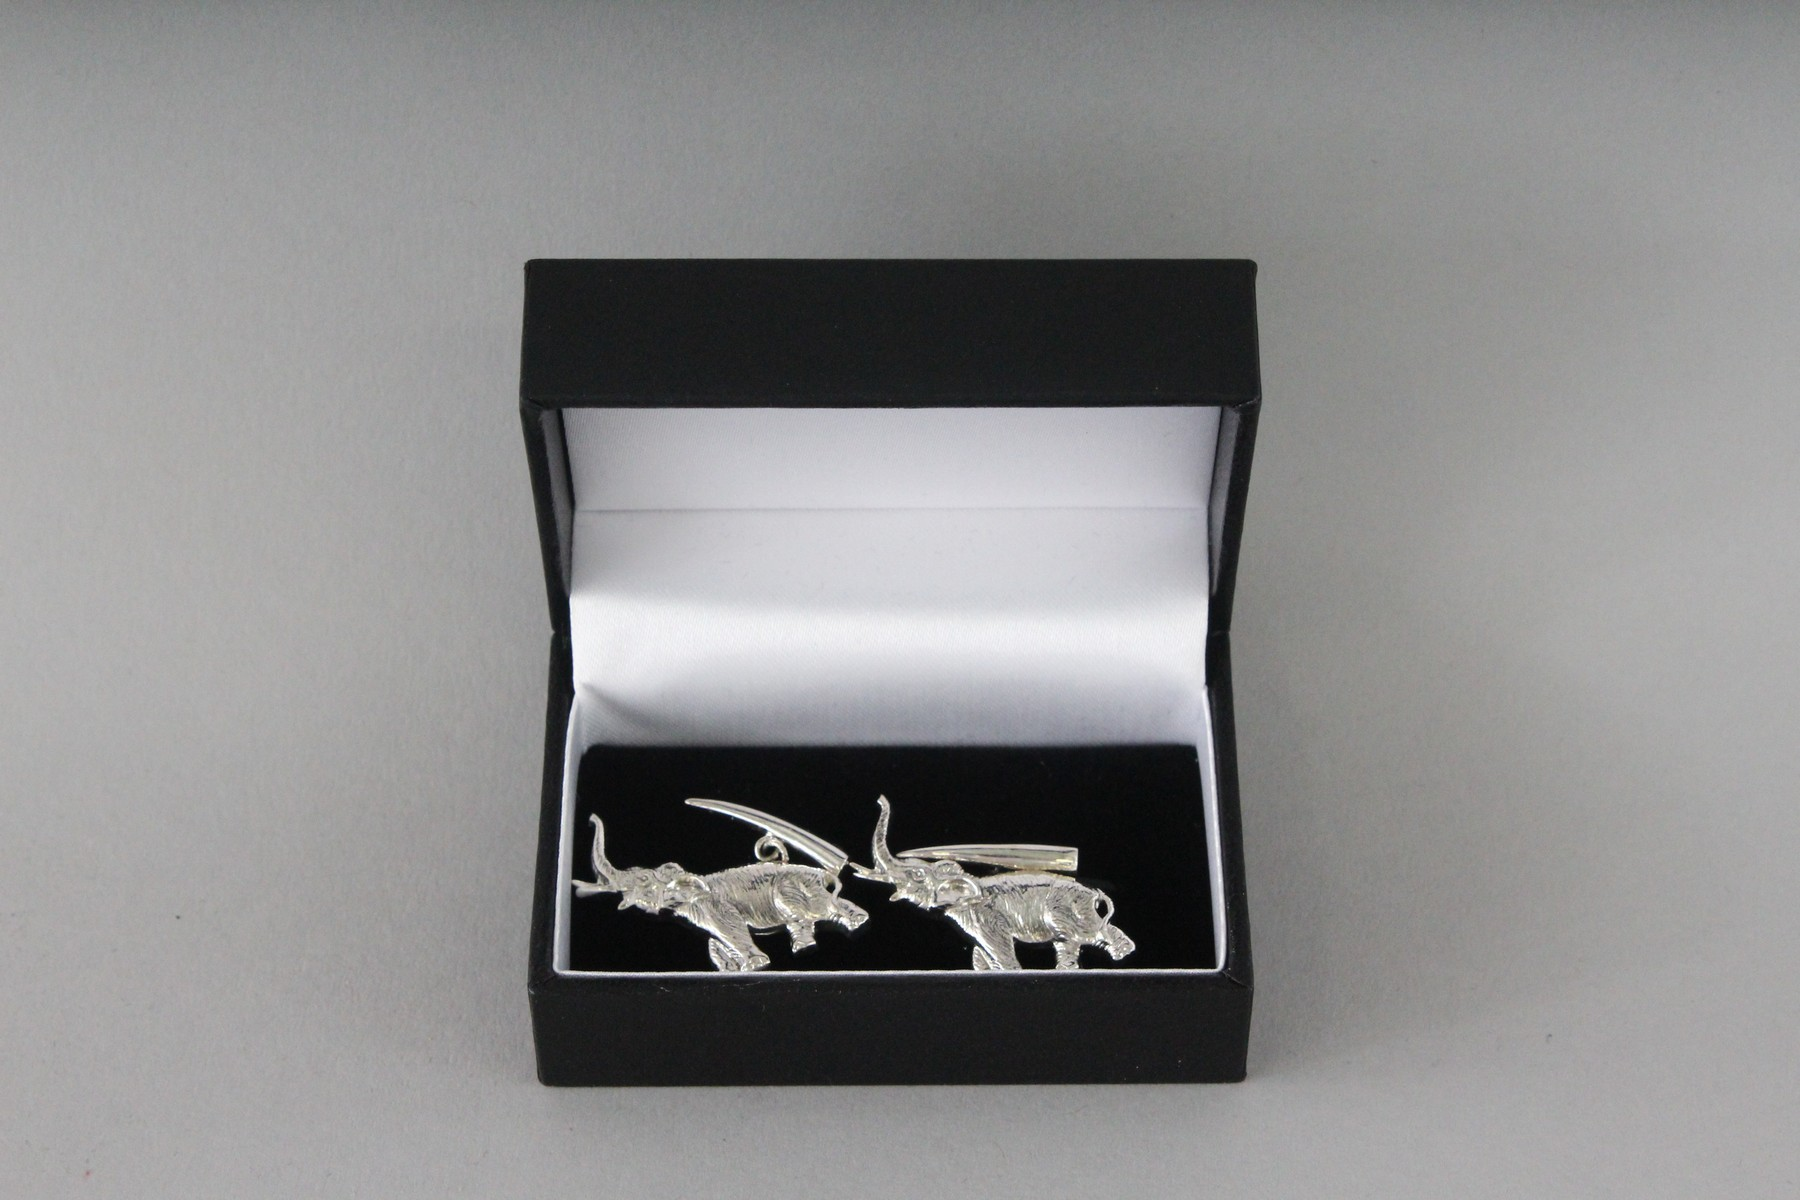 A PAIR OF SILVER ELEPHANT CUFFLINKS. - Image 3 of 3